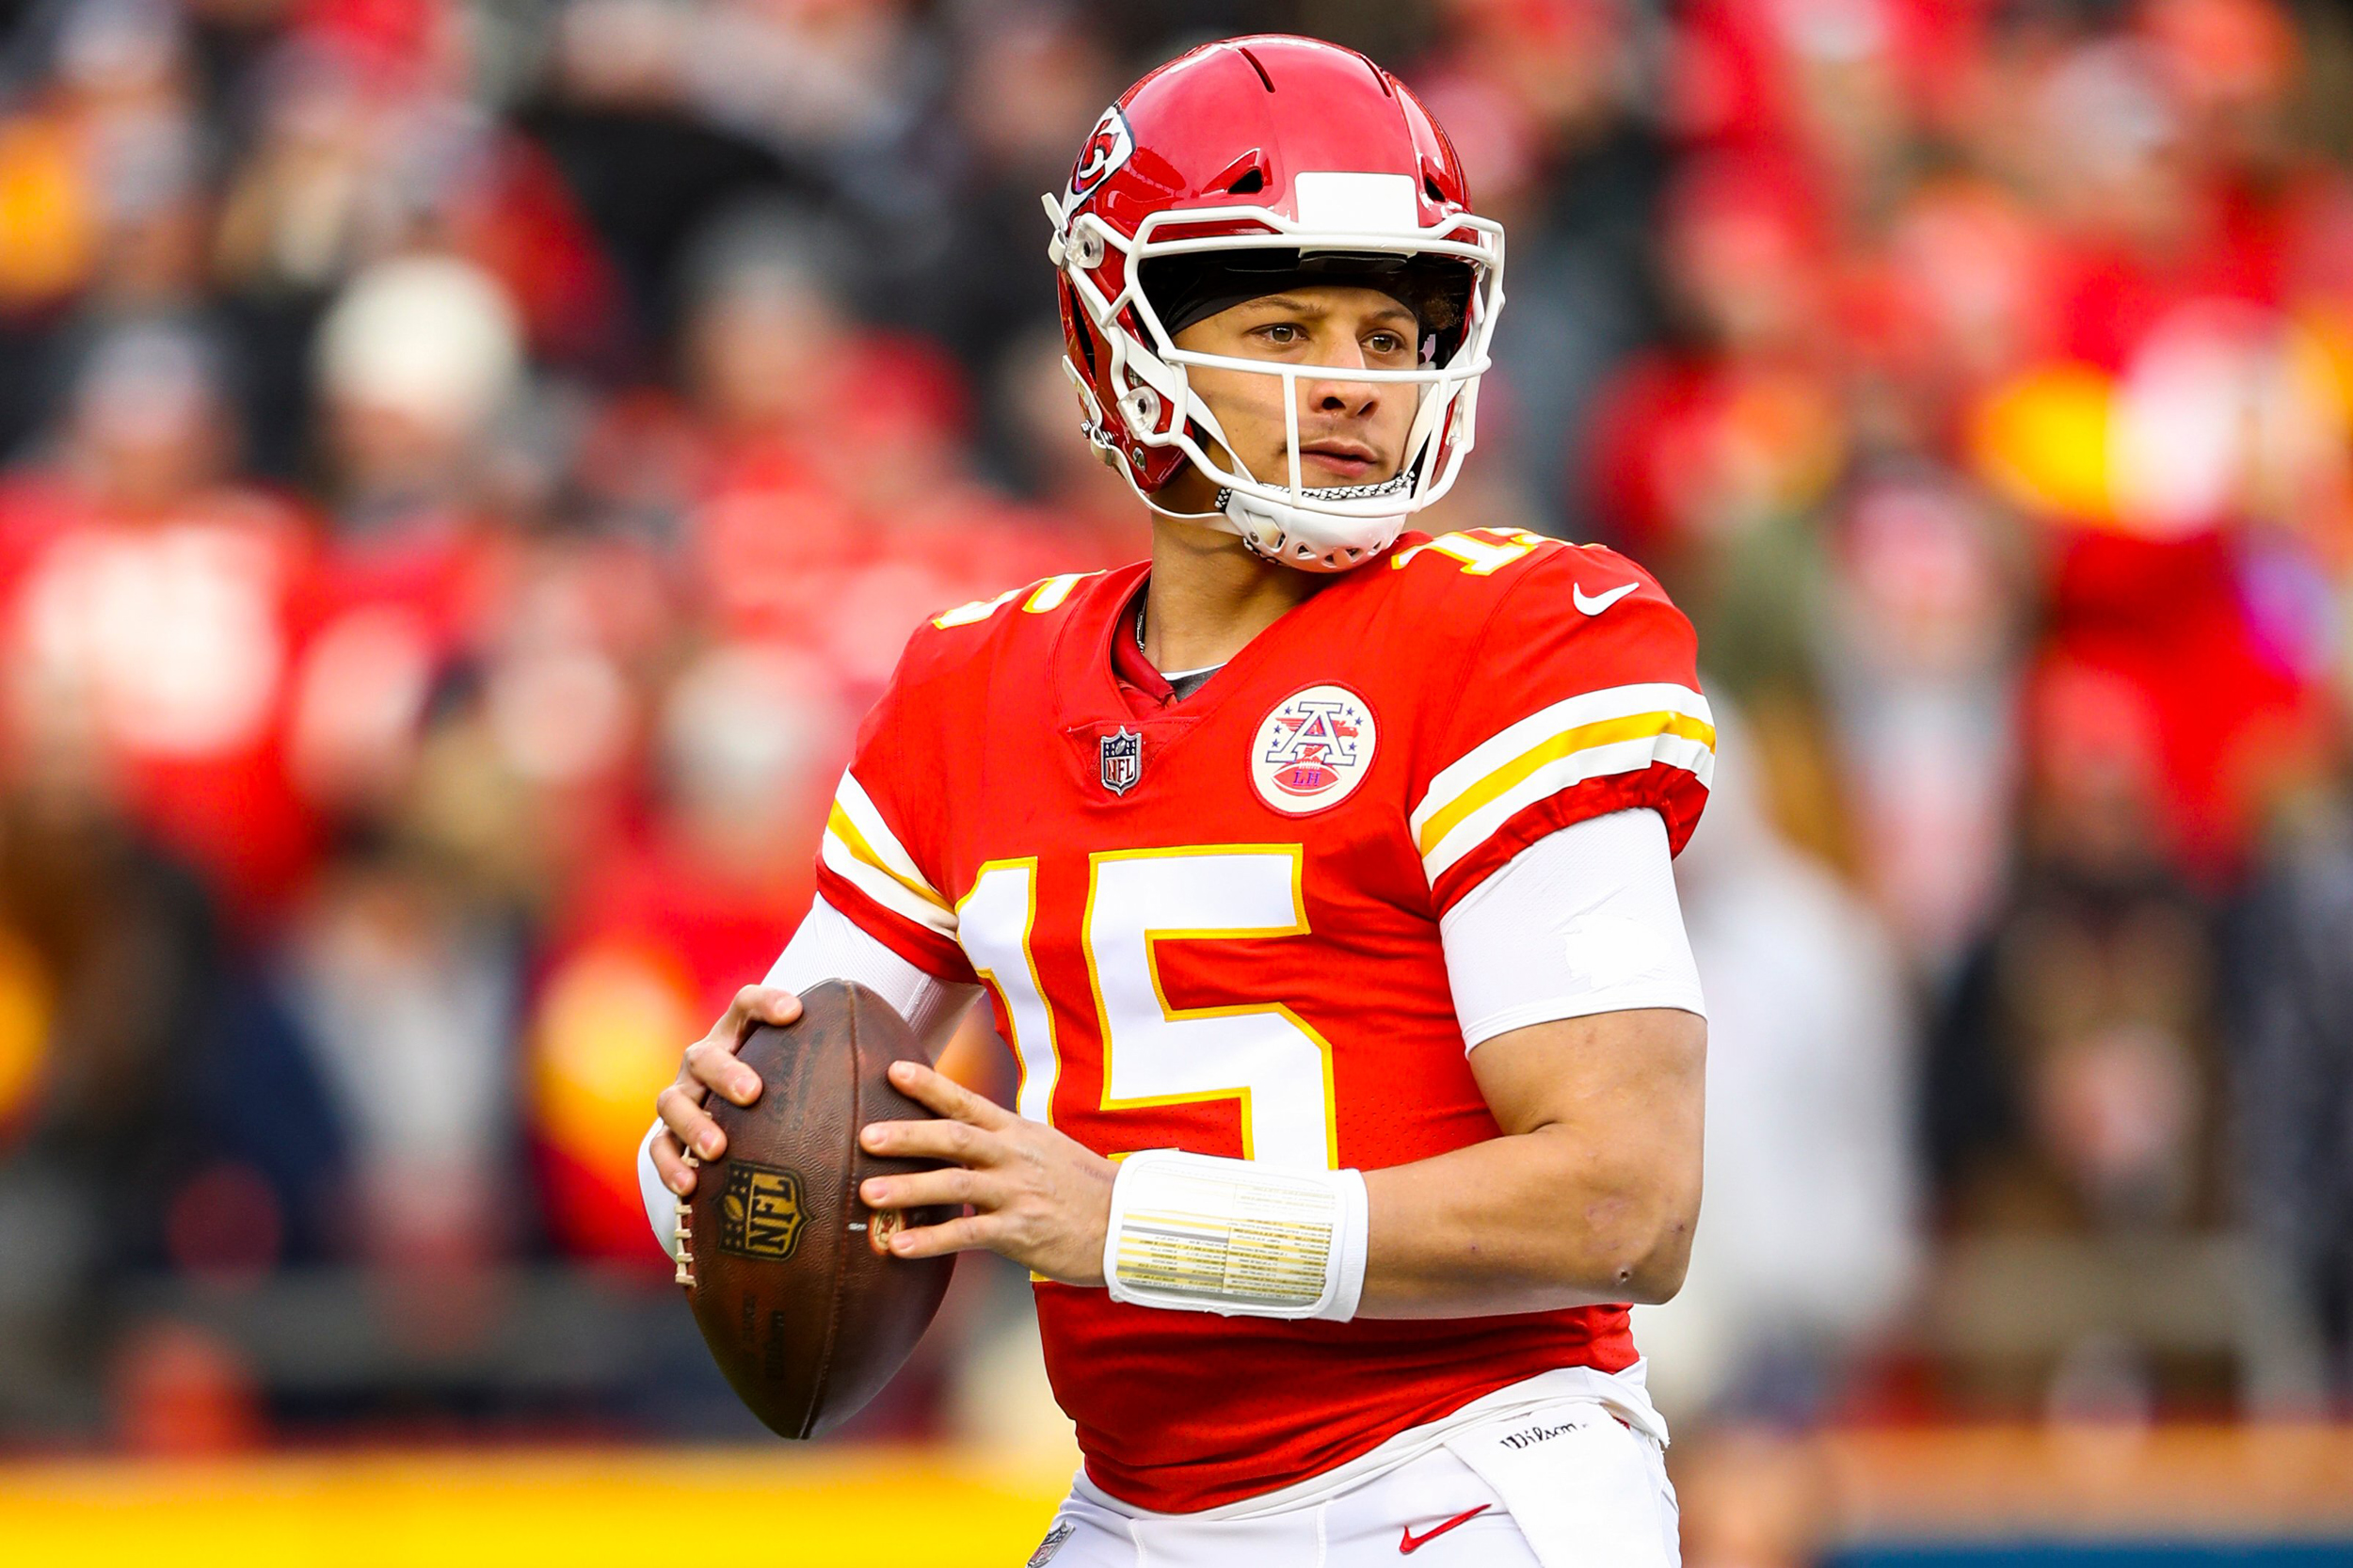 NFL-playoffs:-Kansas-City-Chiefs-host-the-Indianapolis-Colts